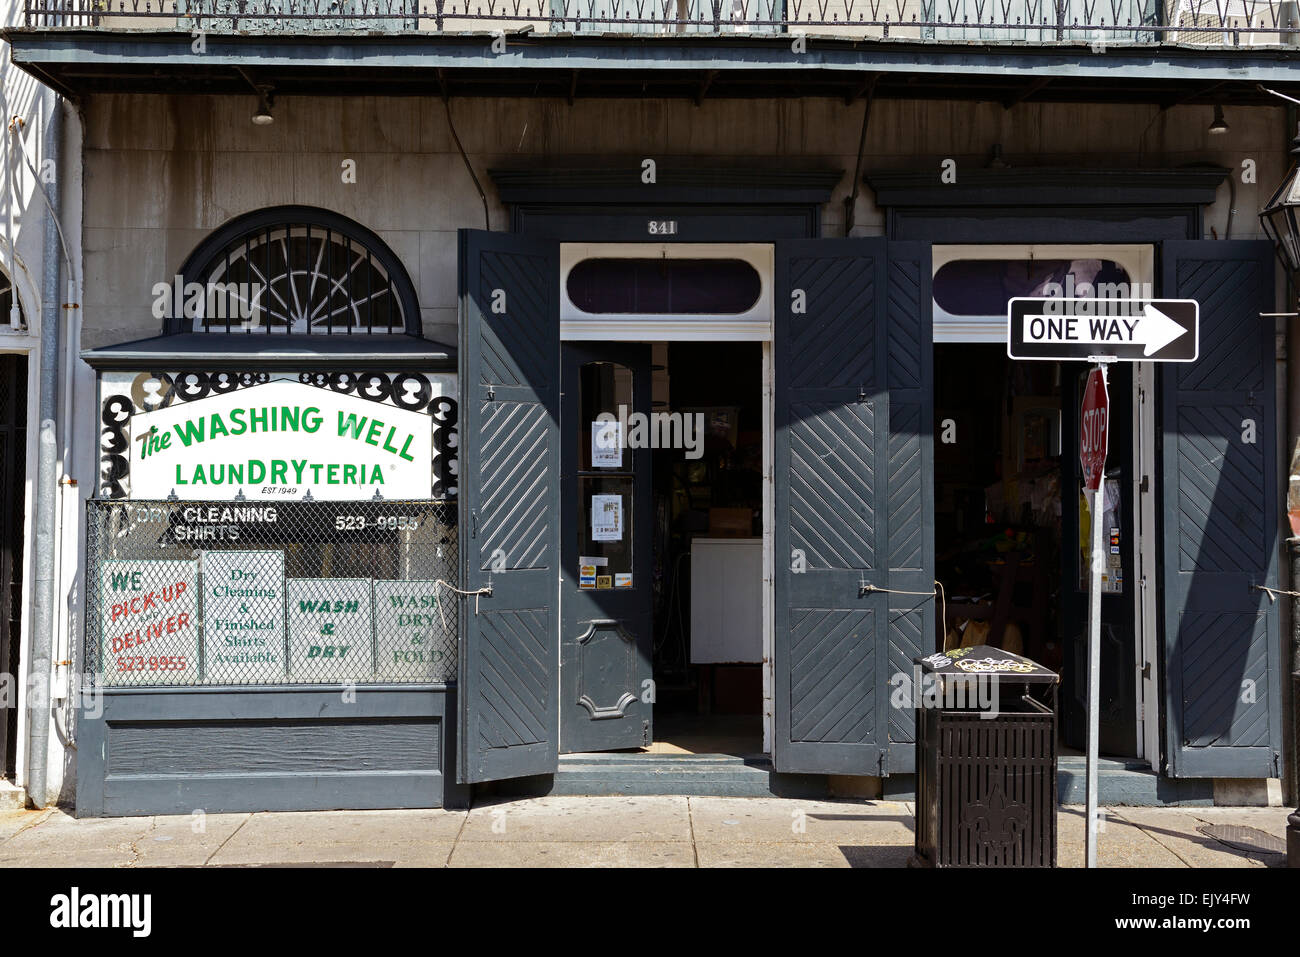 wishing well laundryteria laundromat dry cleaners bourbon street business new orleans RM USA - Stock Image